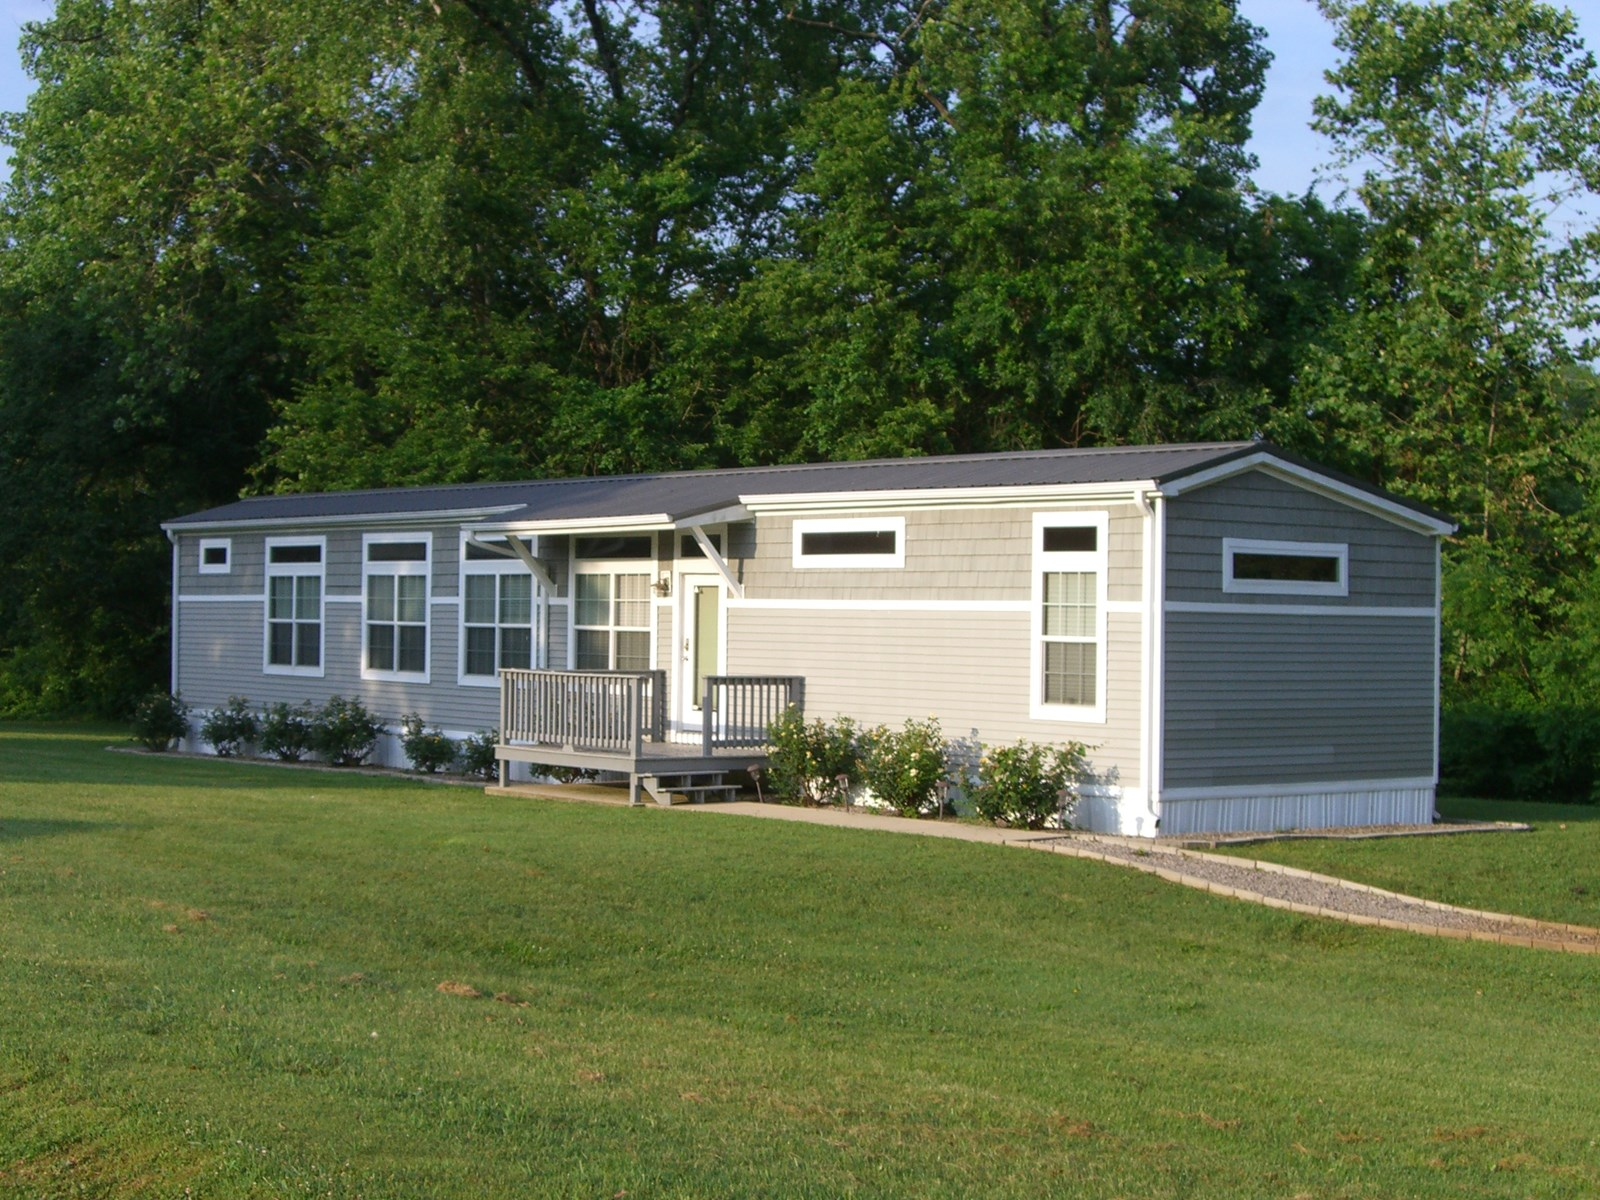 Beautiful, one-of-a-kind, single-wide mobile home!